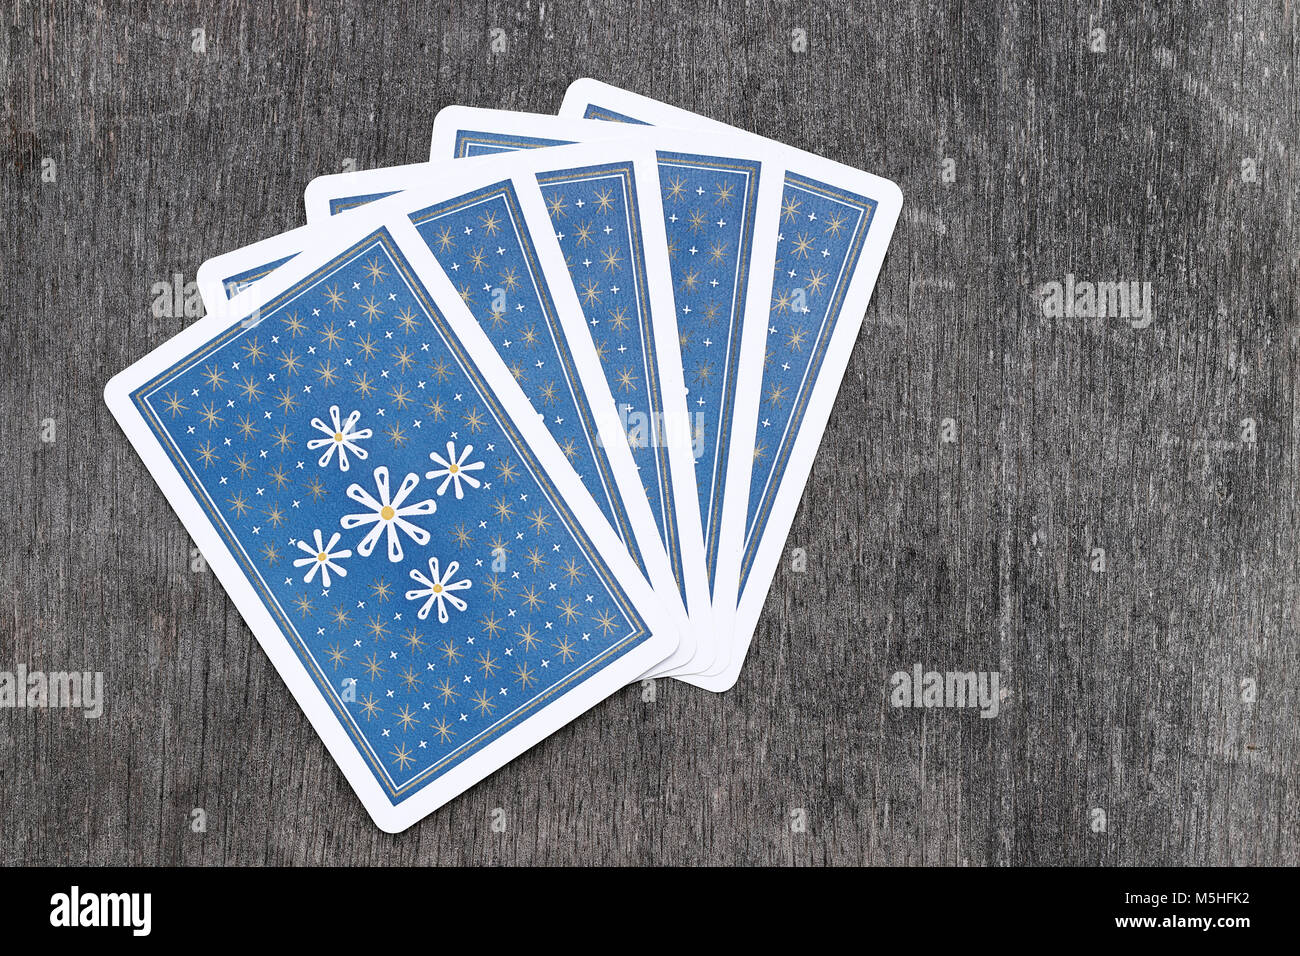 Trump cards back side on grungy wooden table at the studio shot - Stock Image